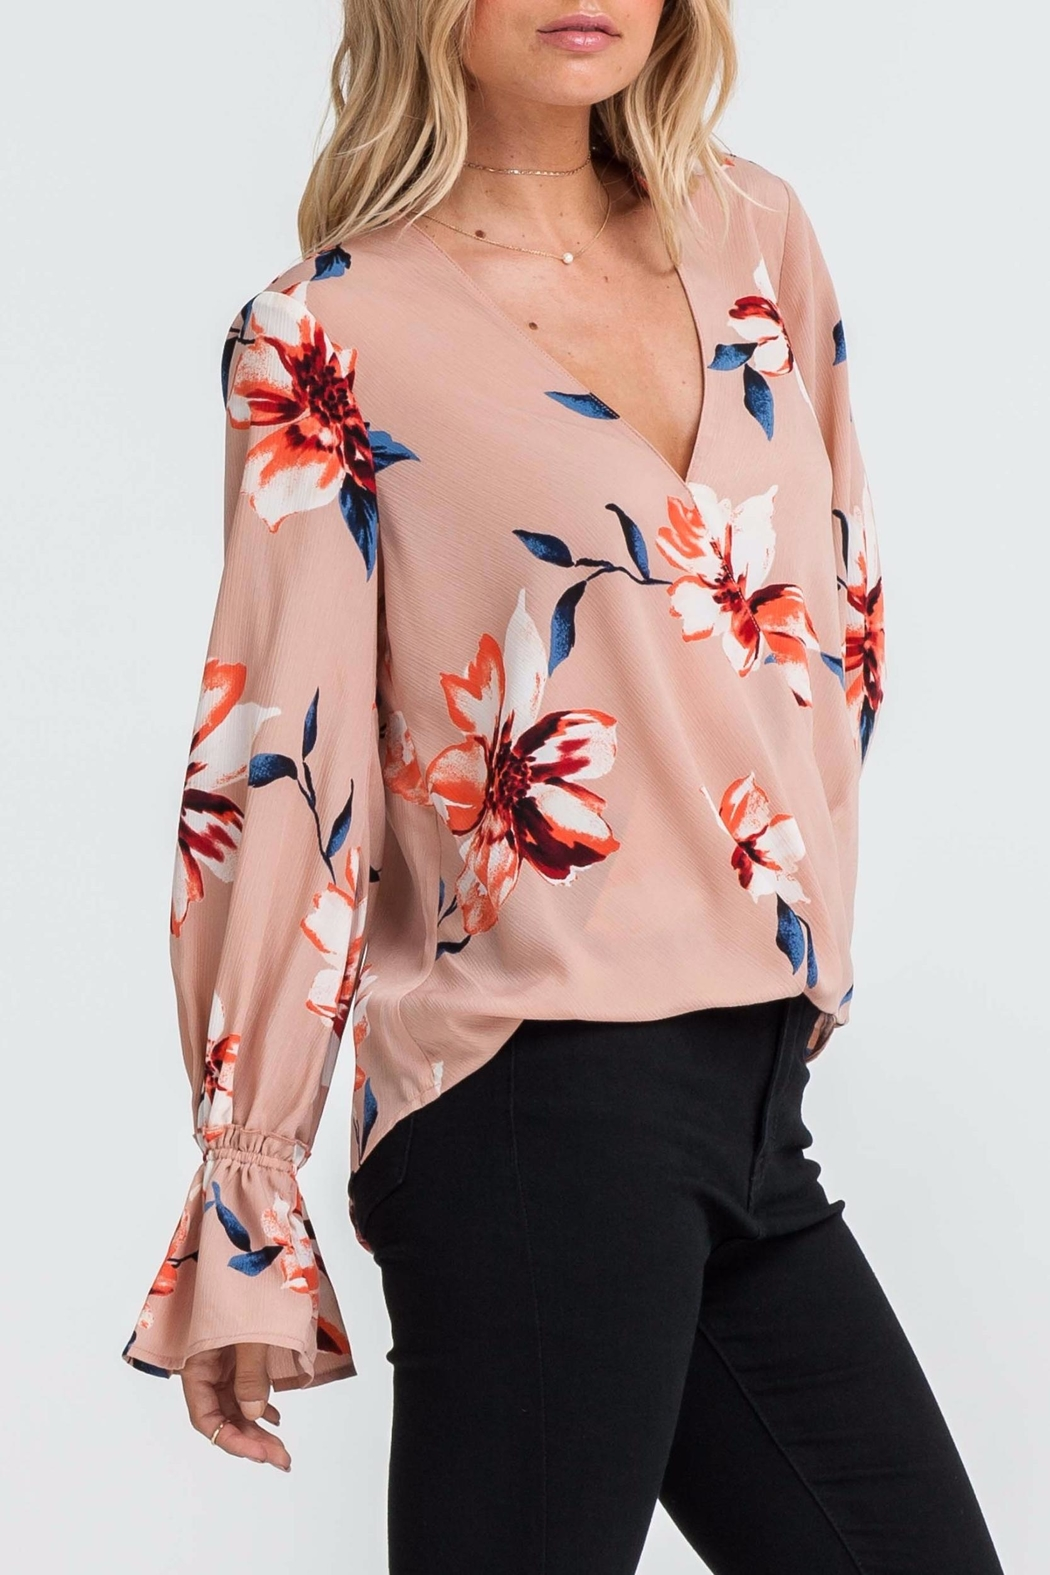 Apricot Lane St. Cloud Blushing Beauty Top - Front Full Image